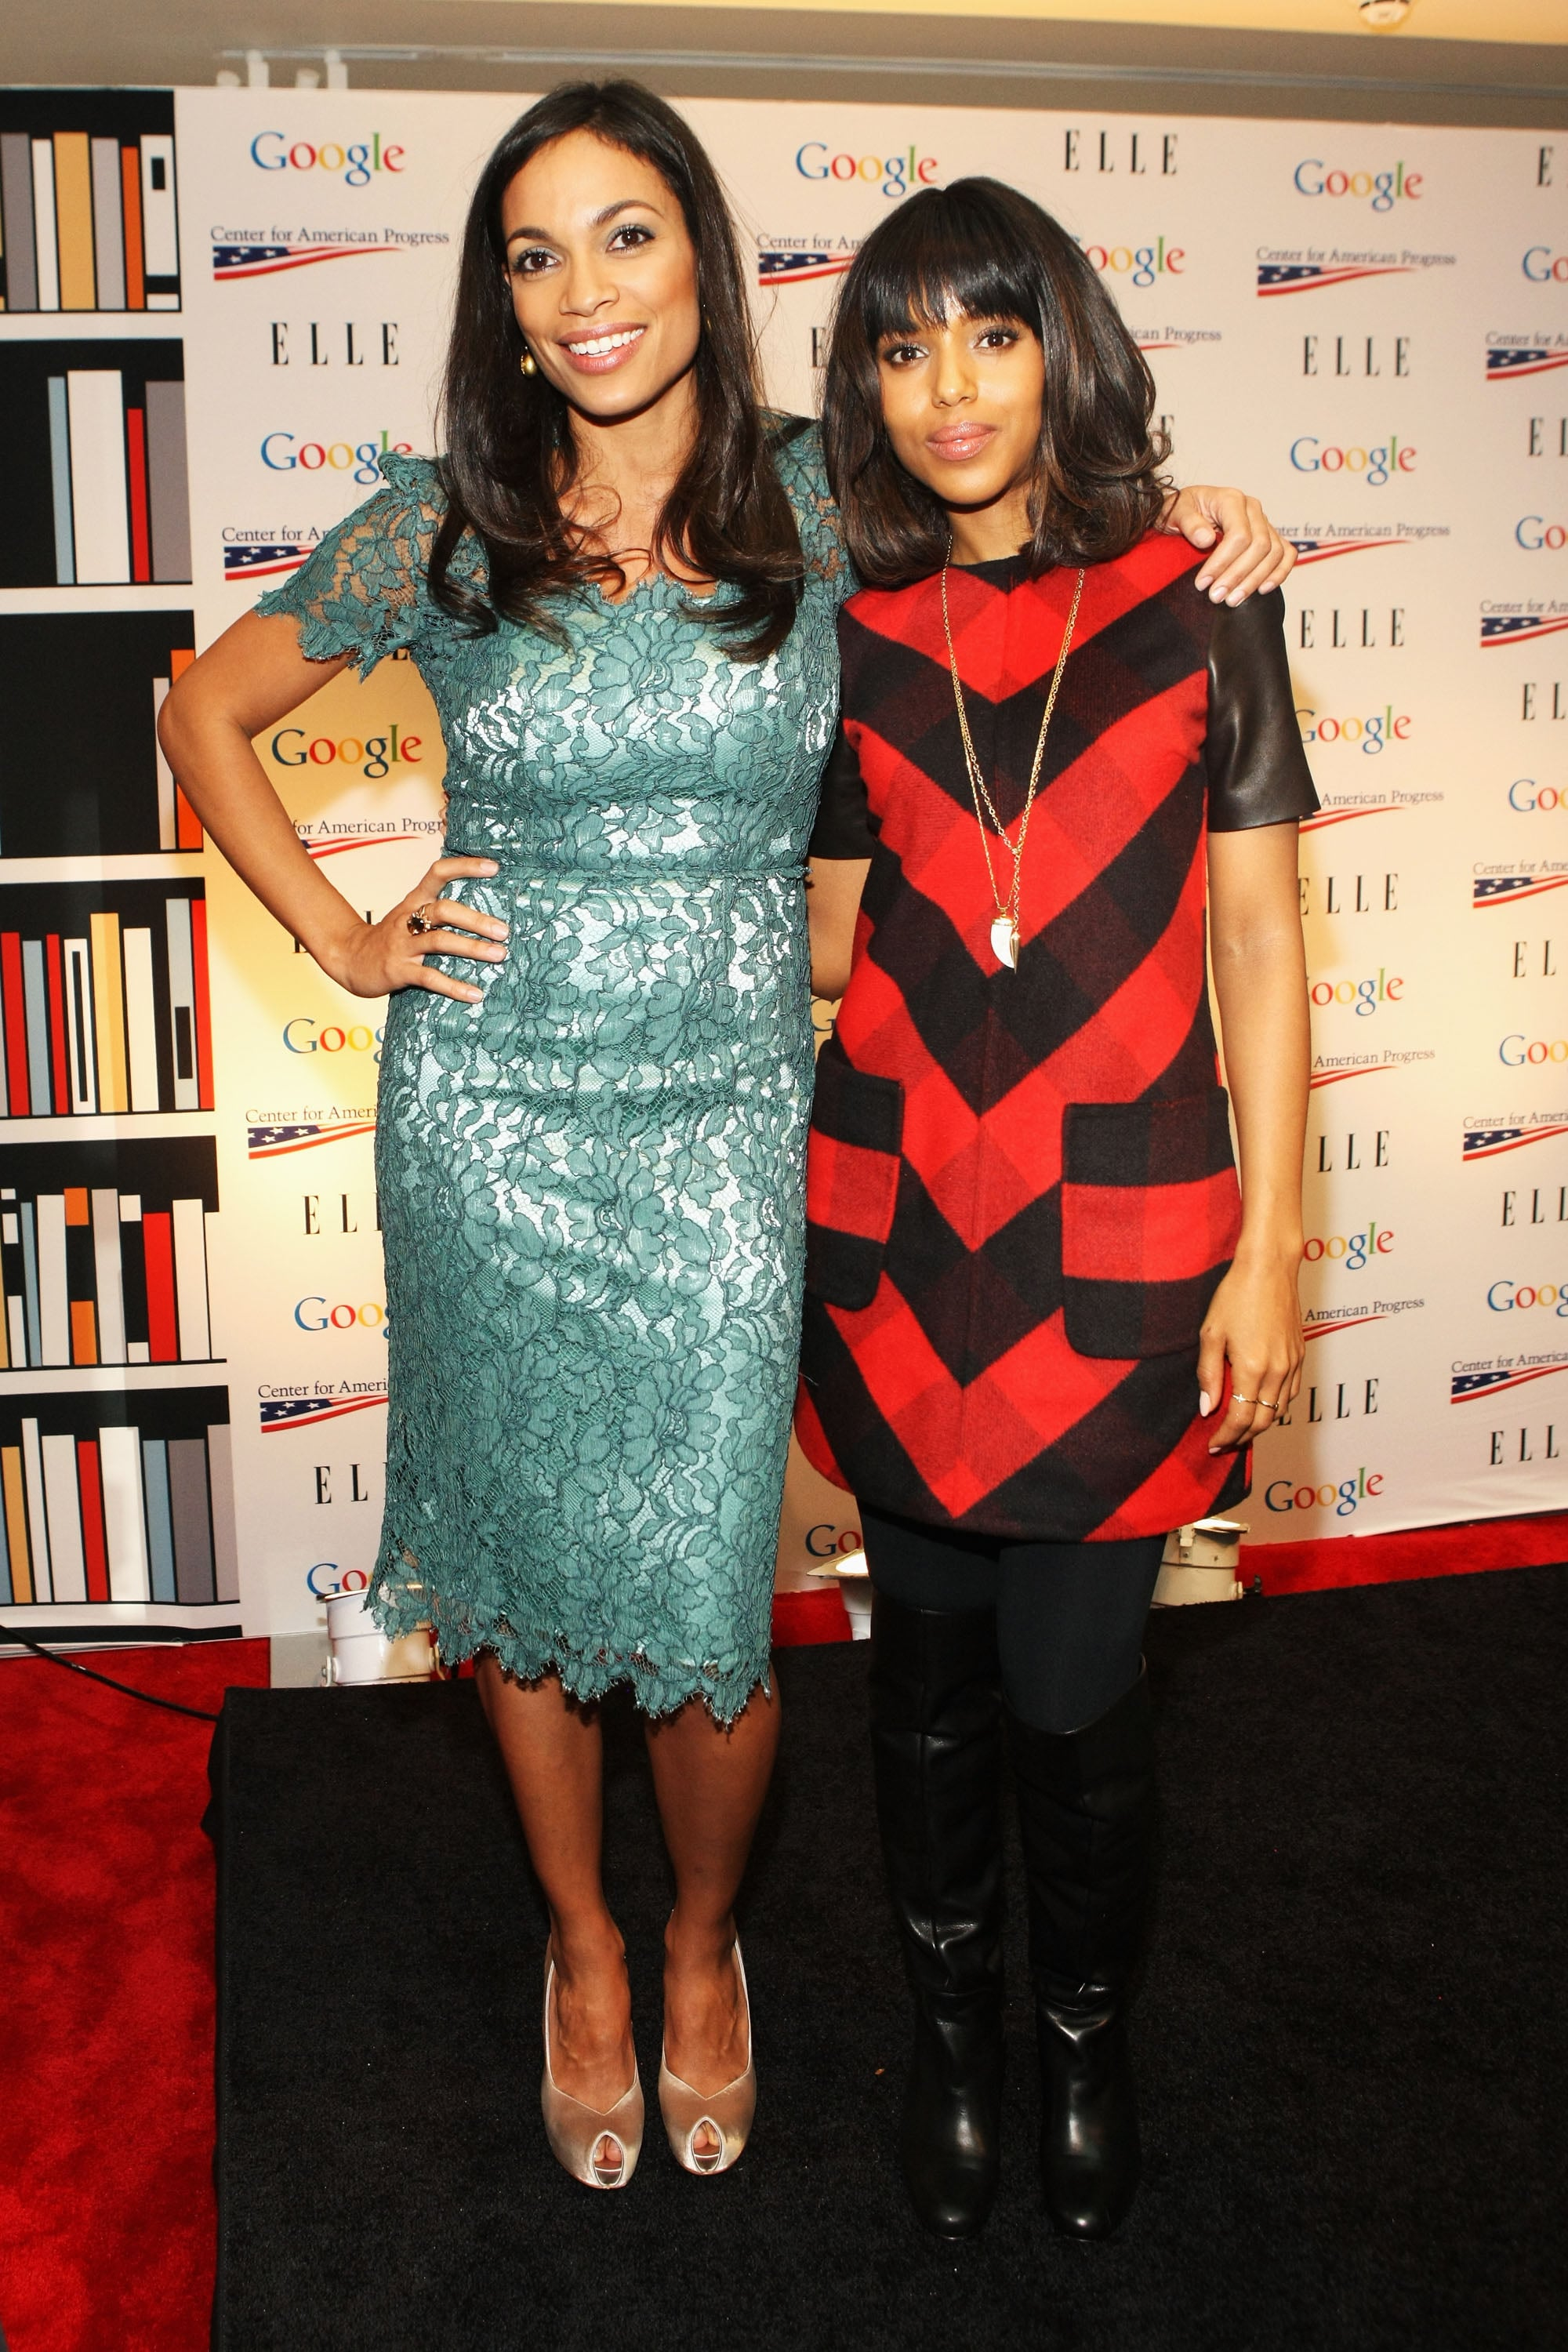 Stylish stars Rosario Dawson and Kerry Washington posed for pictures at an inaugural event Sunday.